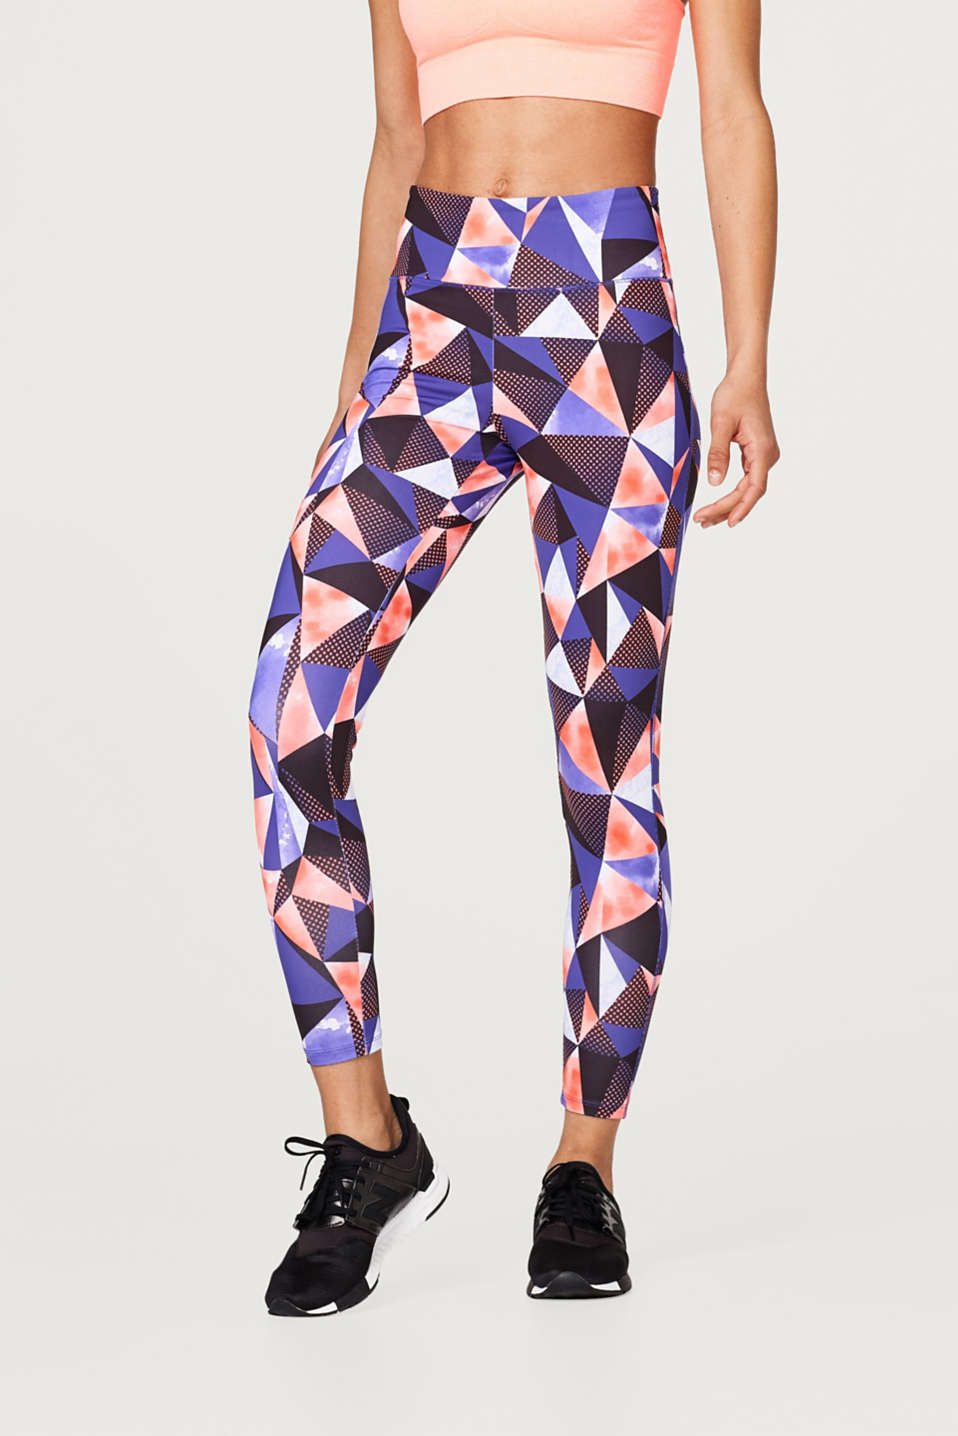 Esprit - Active trousers with a graphic print, E-DRY